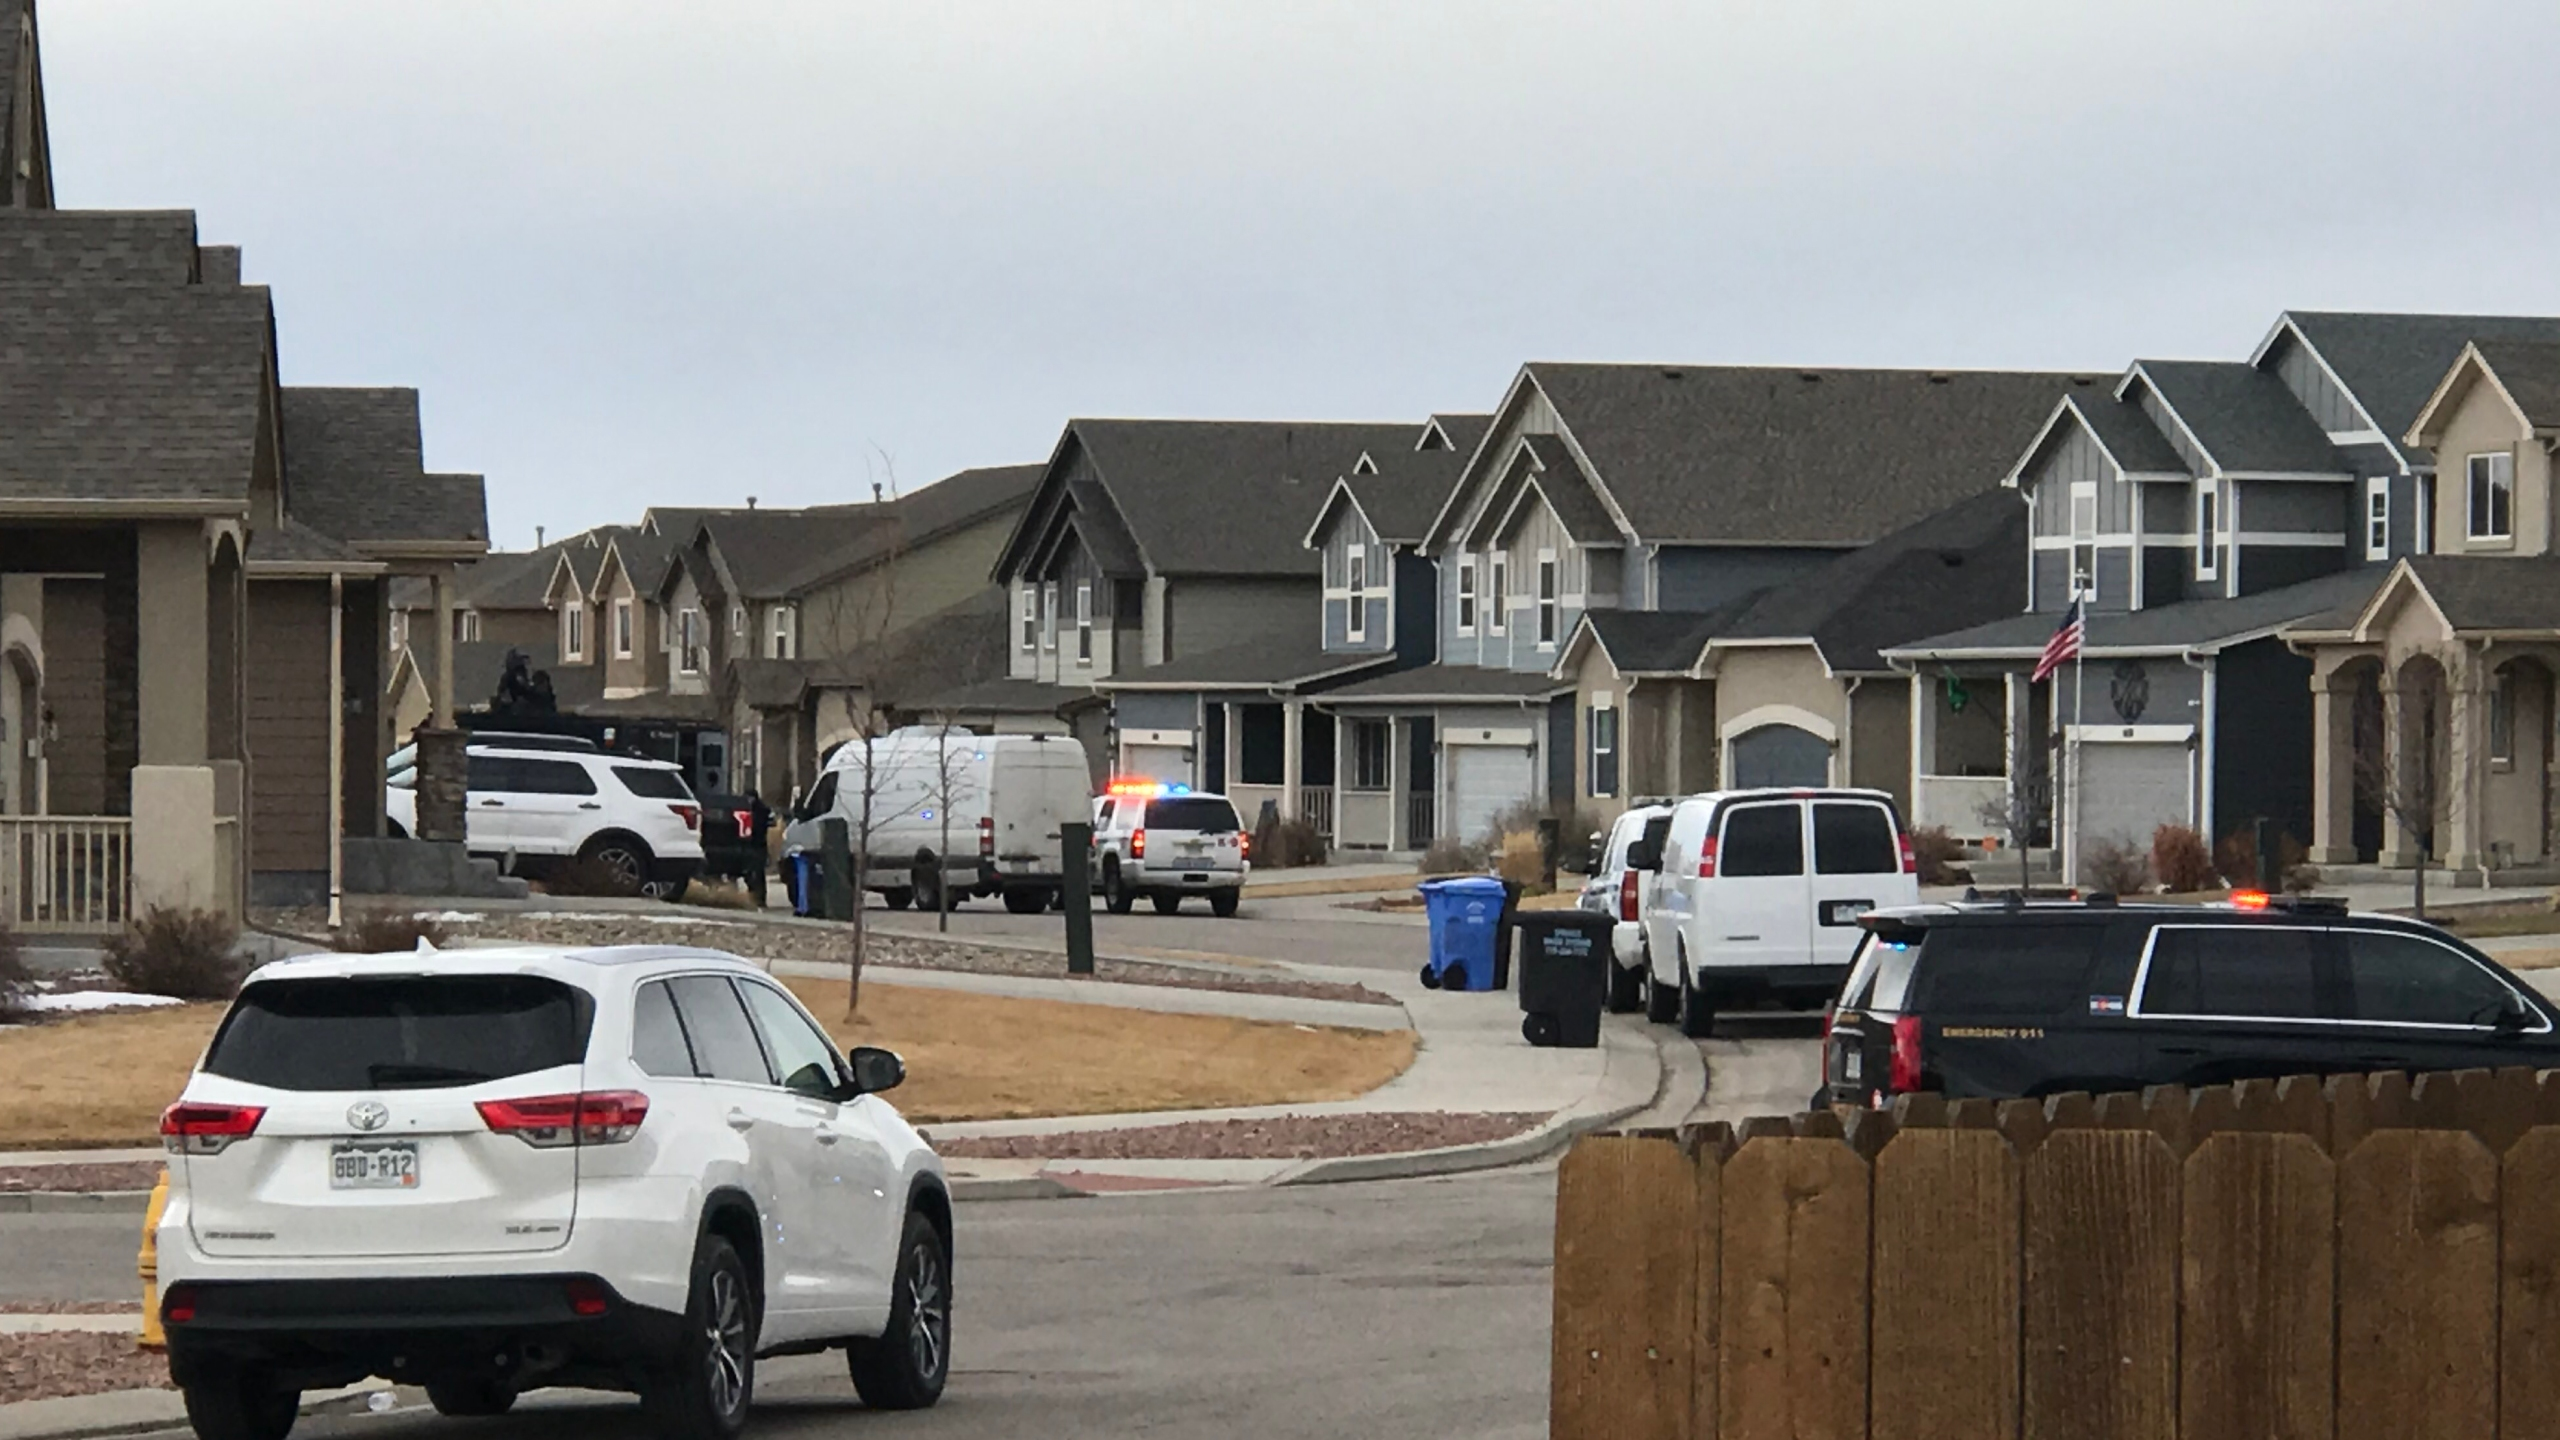 The El Paso County Sheriff's Office responds to a barricaded suspect on Stingray Lane in Security Thursday morning. / Shawn Shanle - FOX21 News